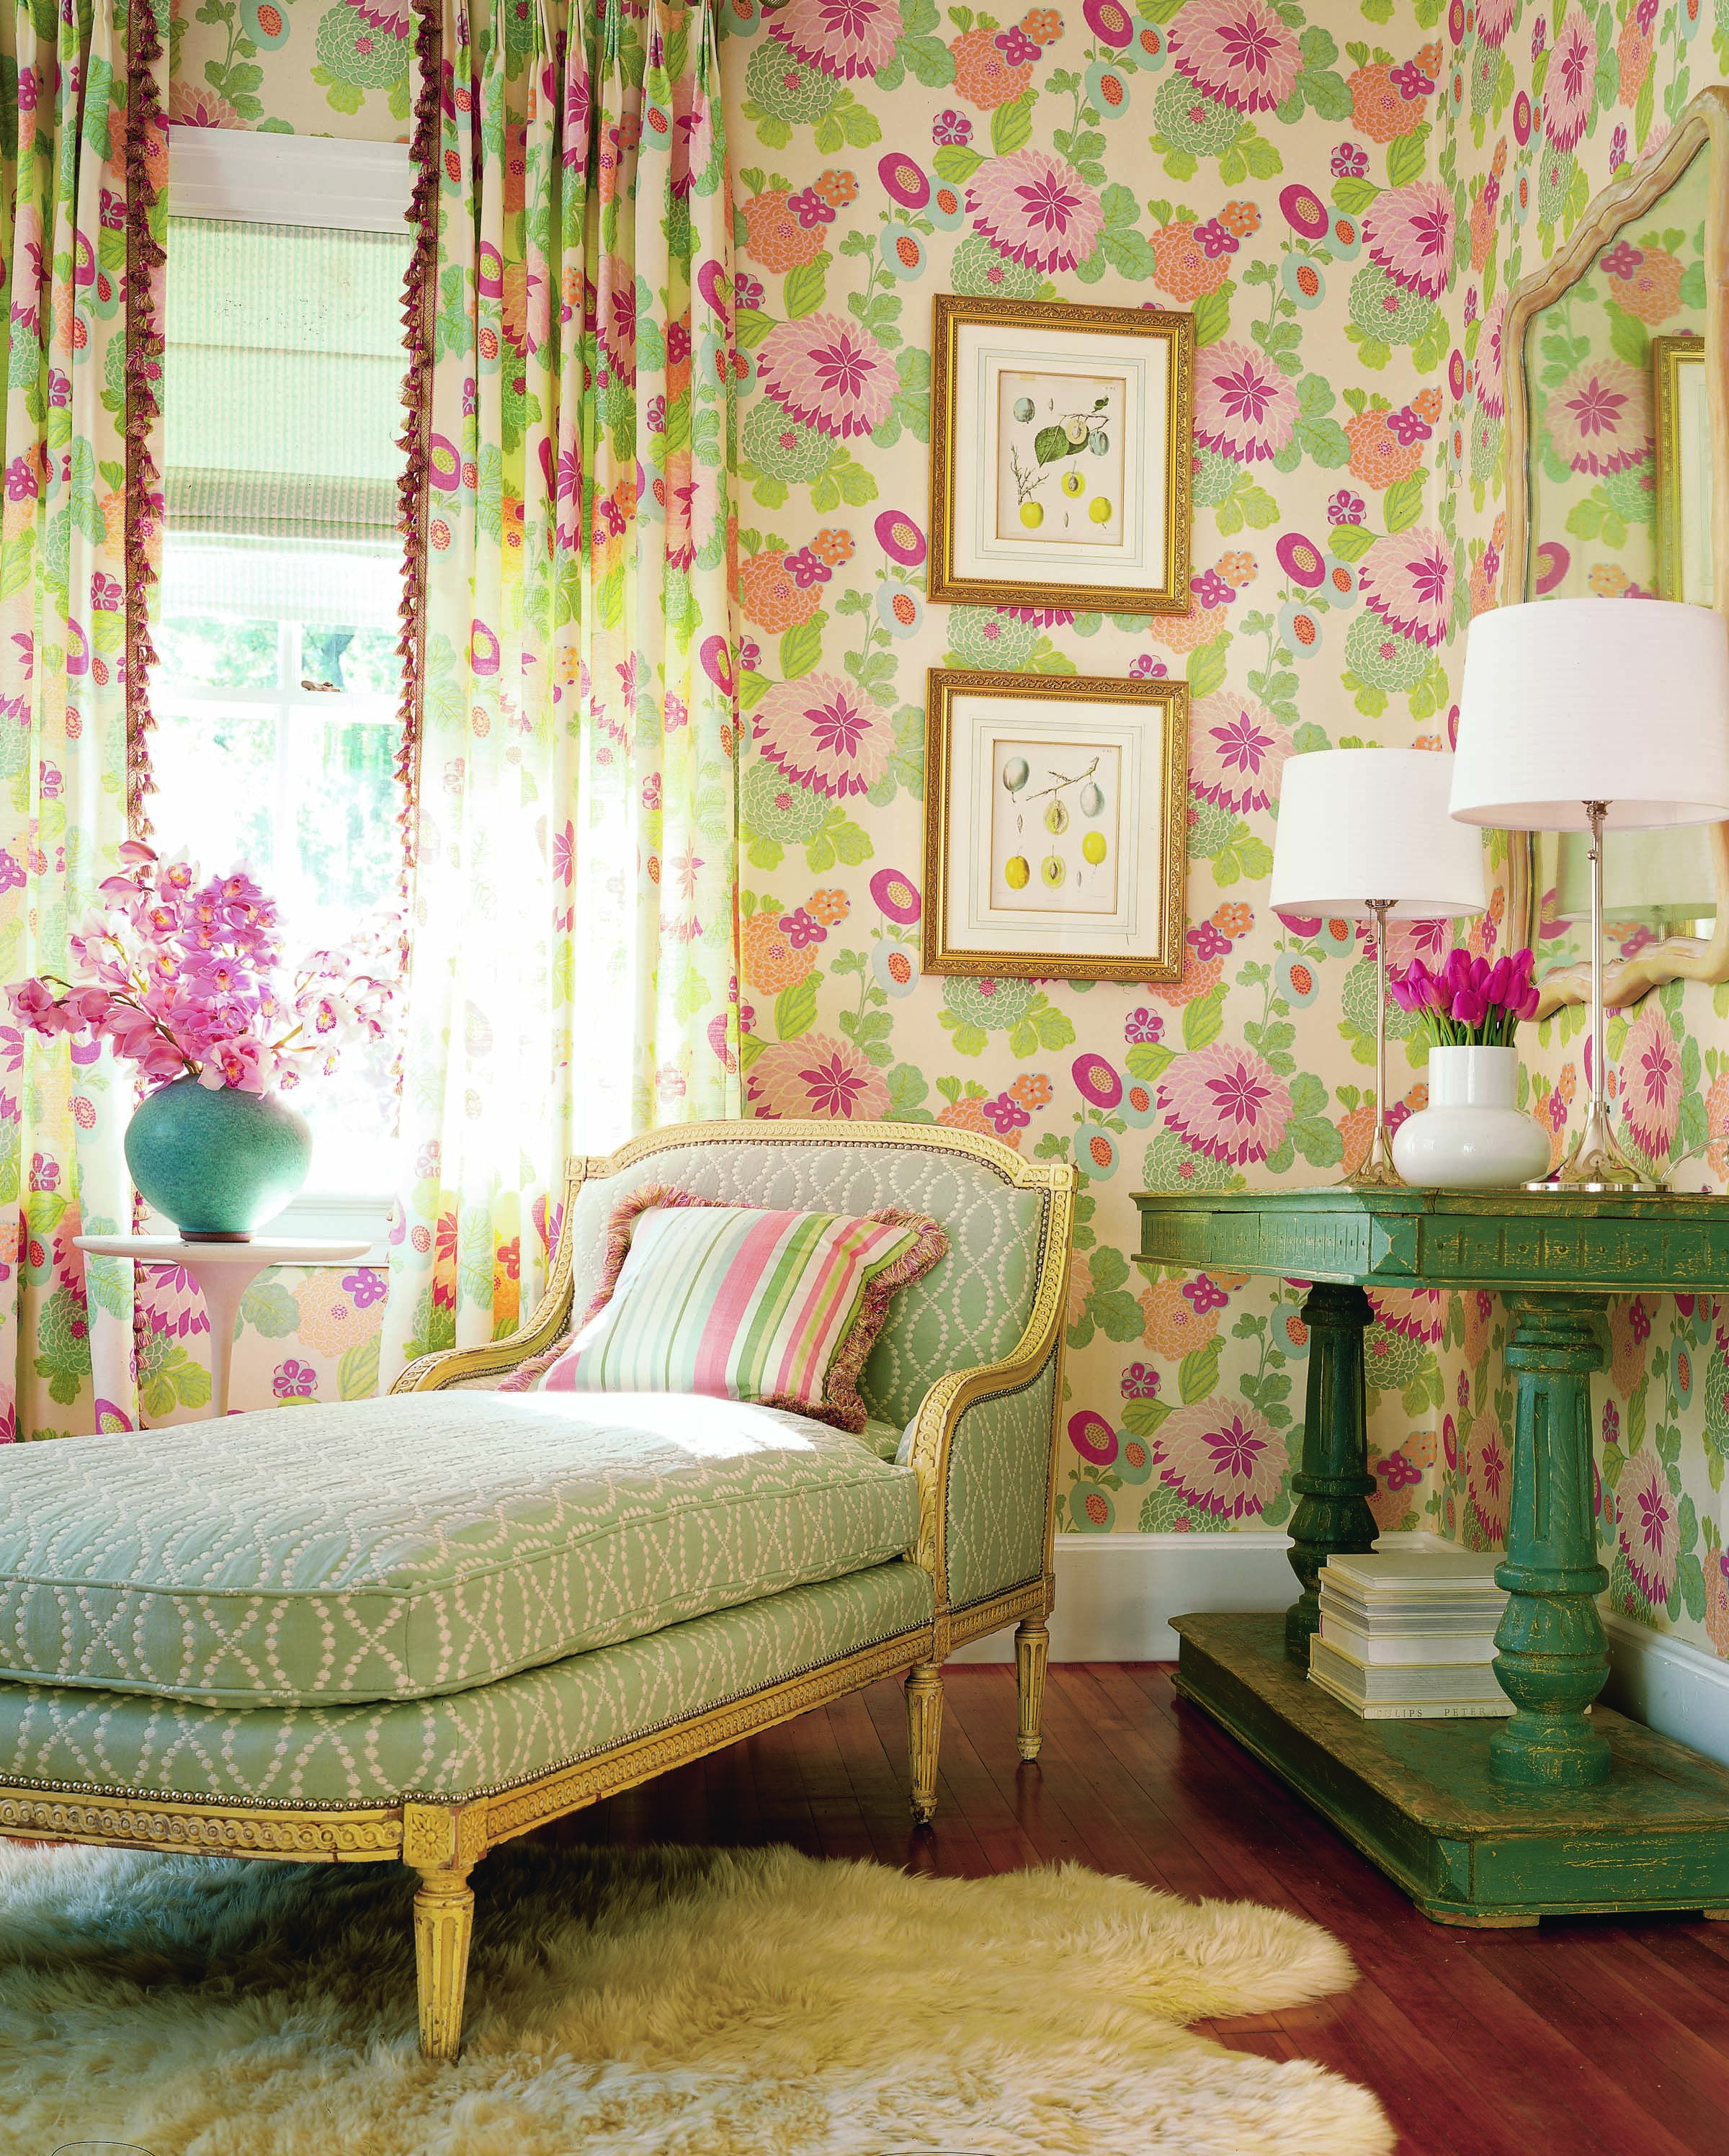 Coco wallpaper and fabric from #Chelsea #Thibaut | Matchy Matchy ...